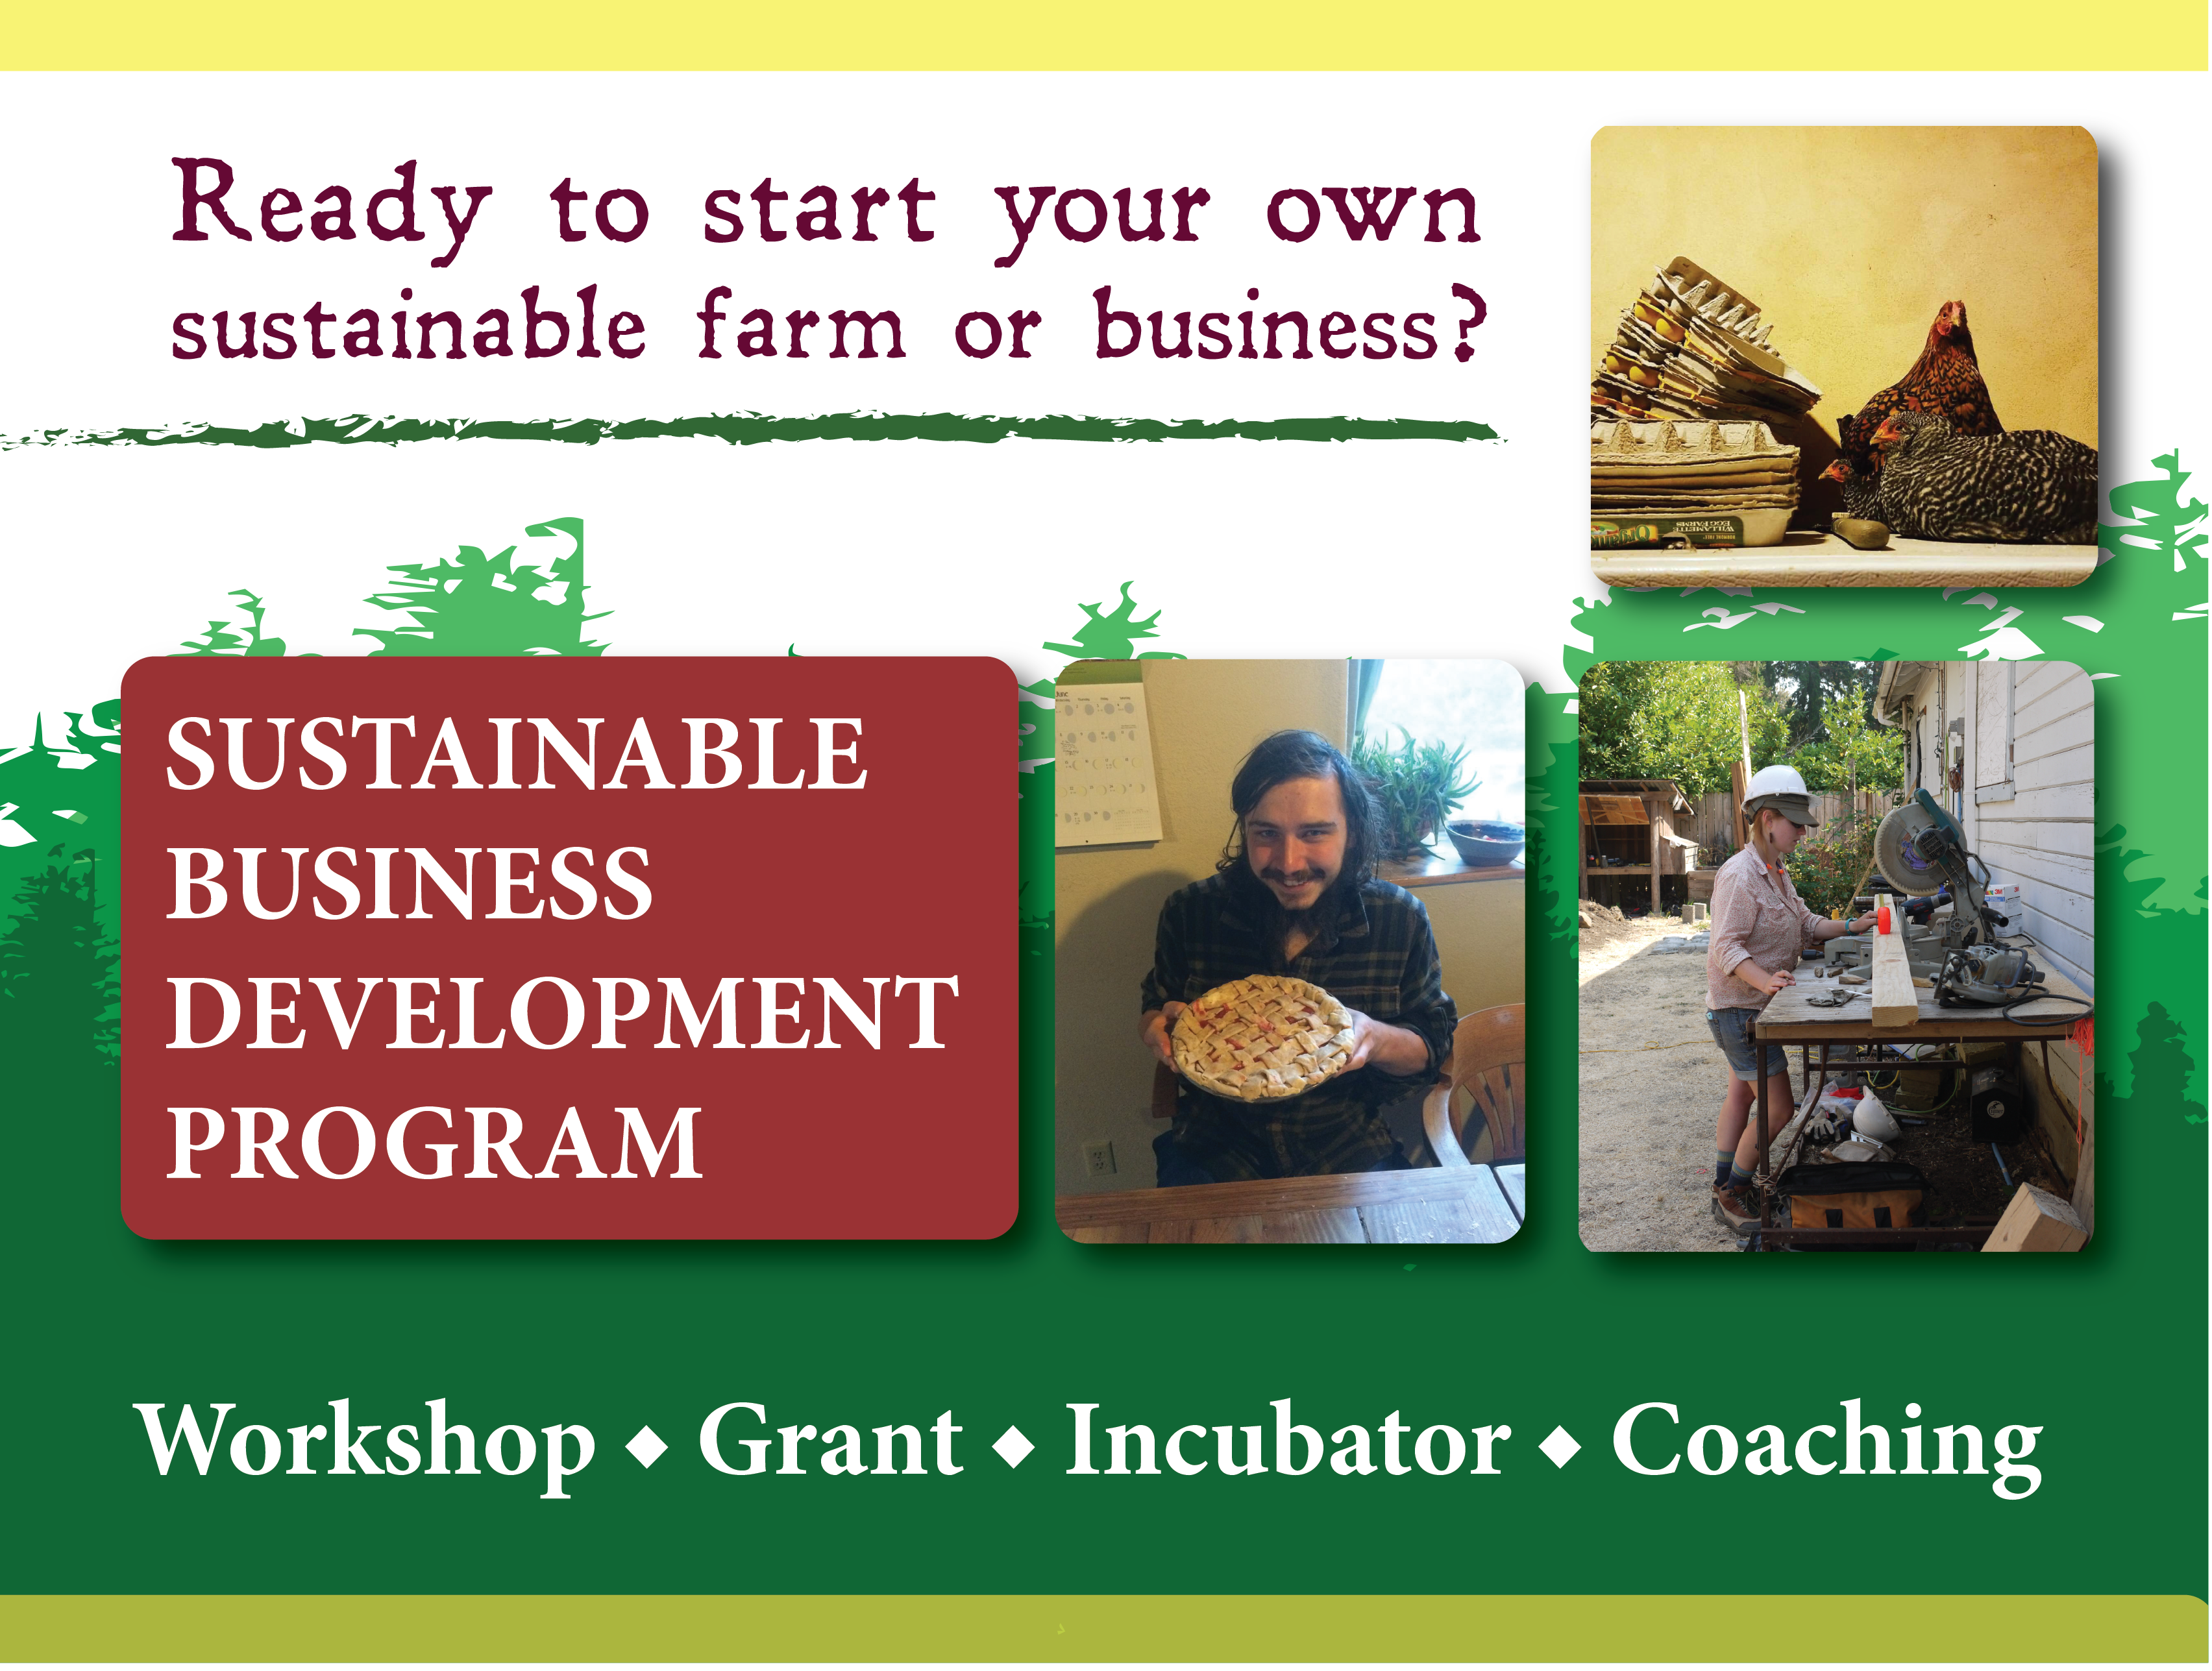 Start a sustainable business through our IDA grant and business coaching program! 6-week workshops offered twice a year.